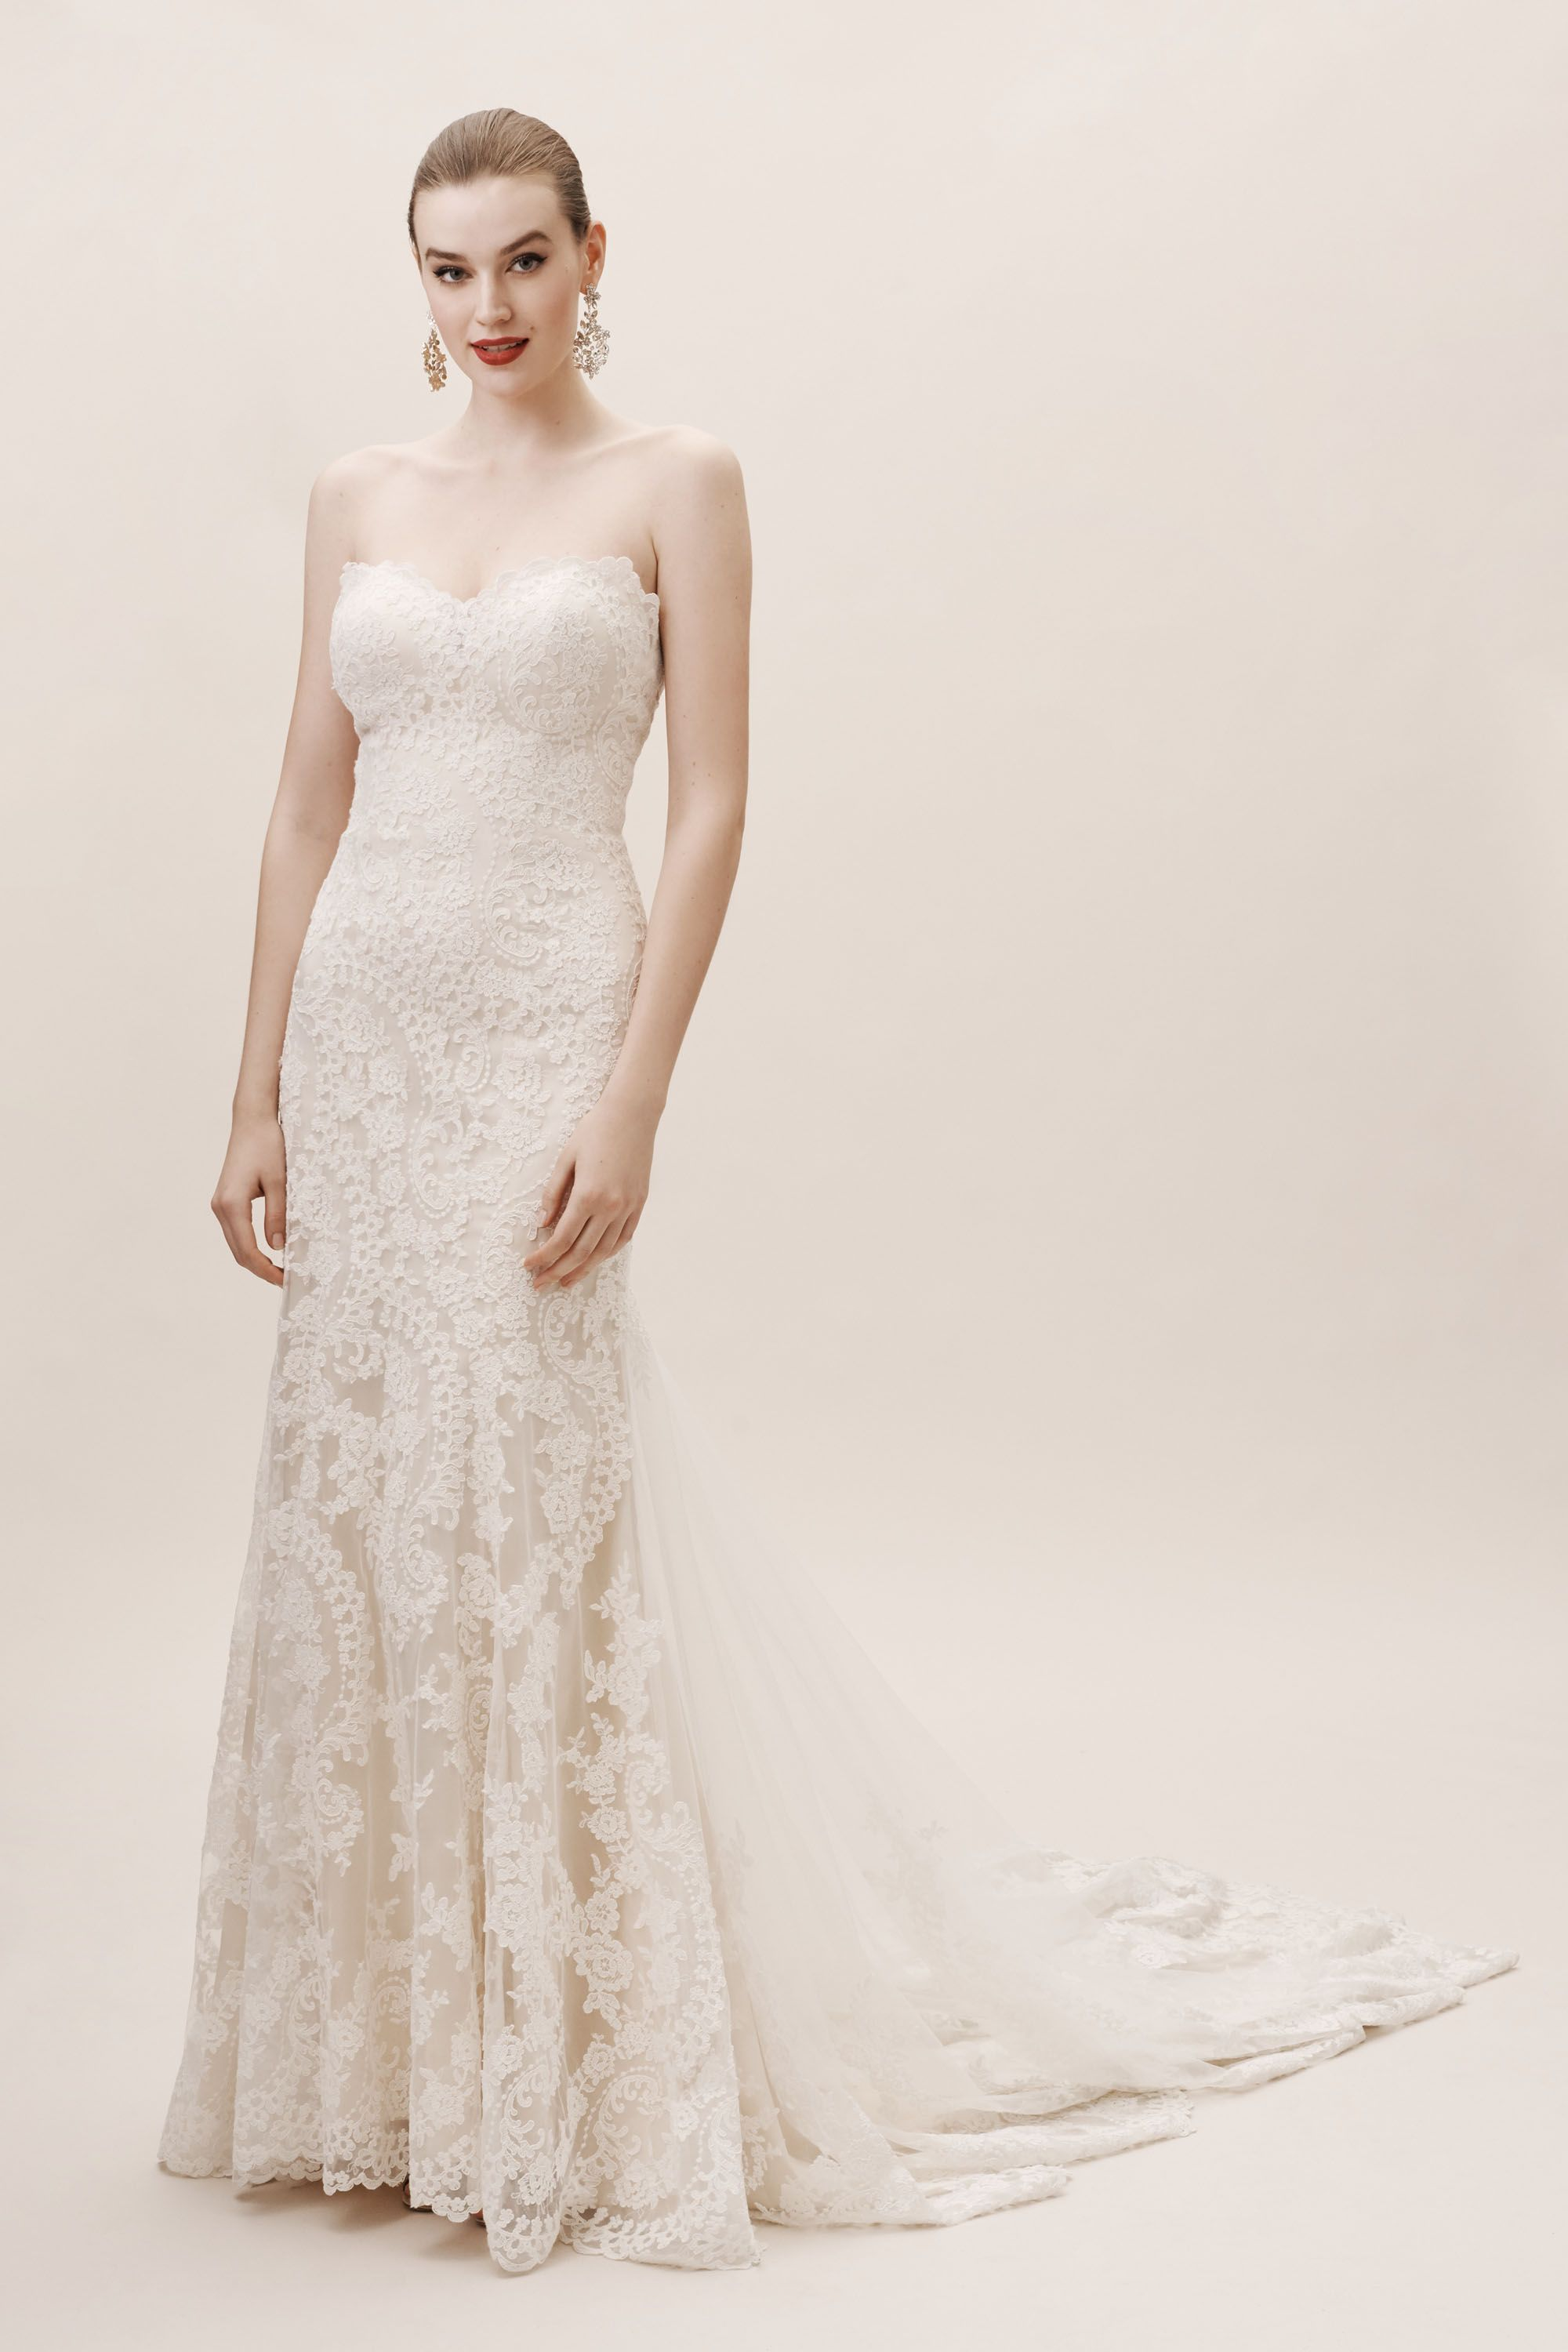 Wedding Wedding Dresses Pictures wedding dresses vintage simple gowns bhldn leigh gown gown